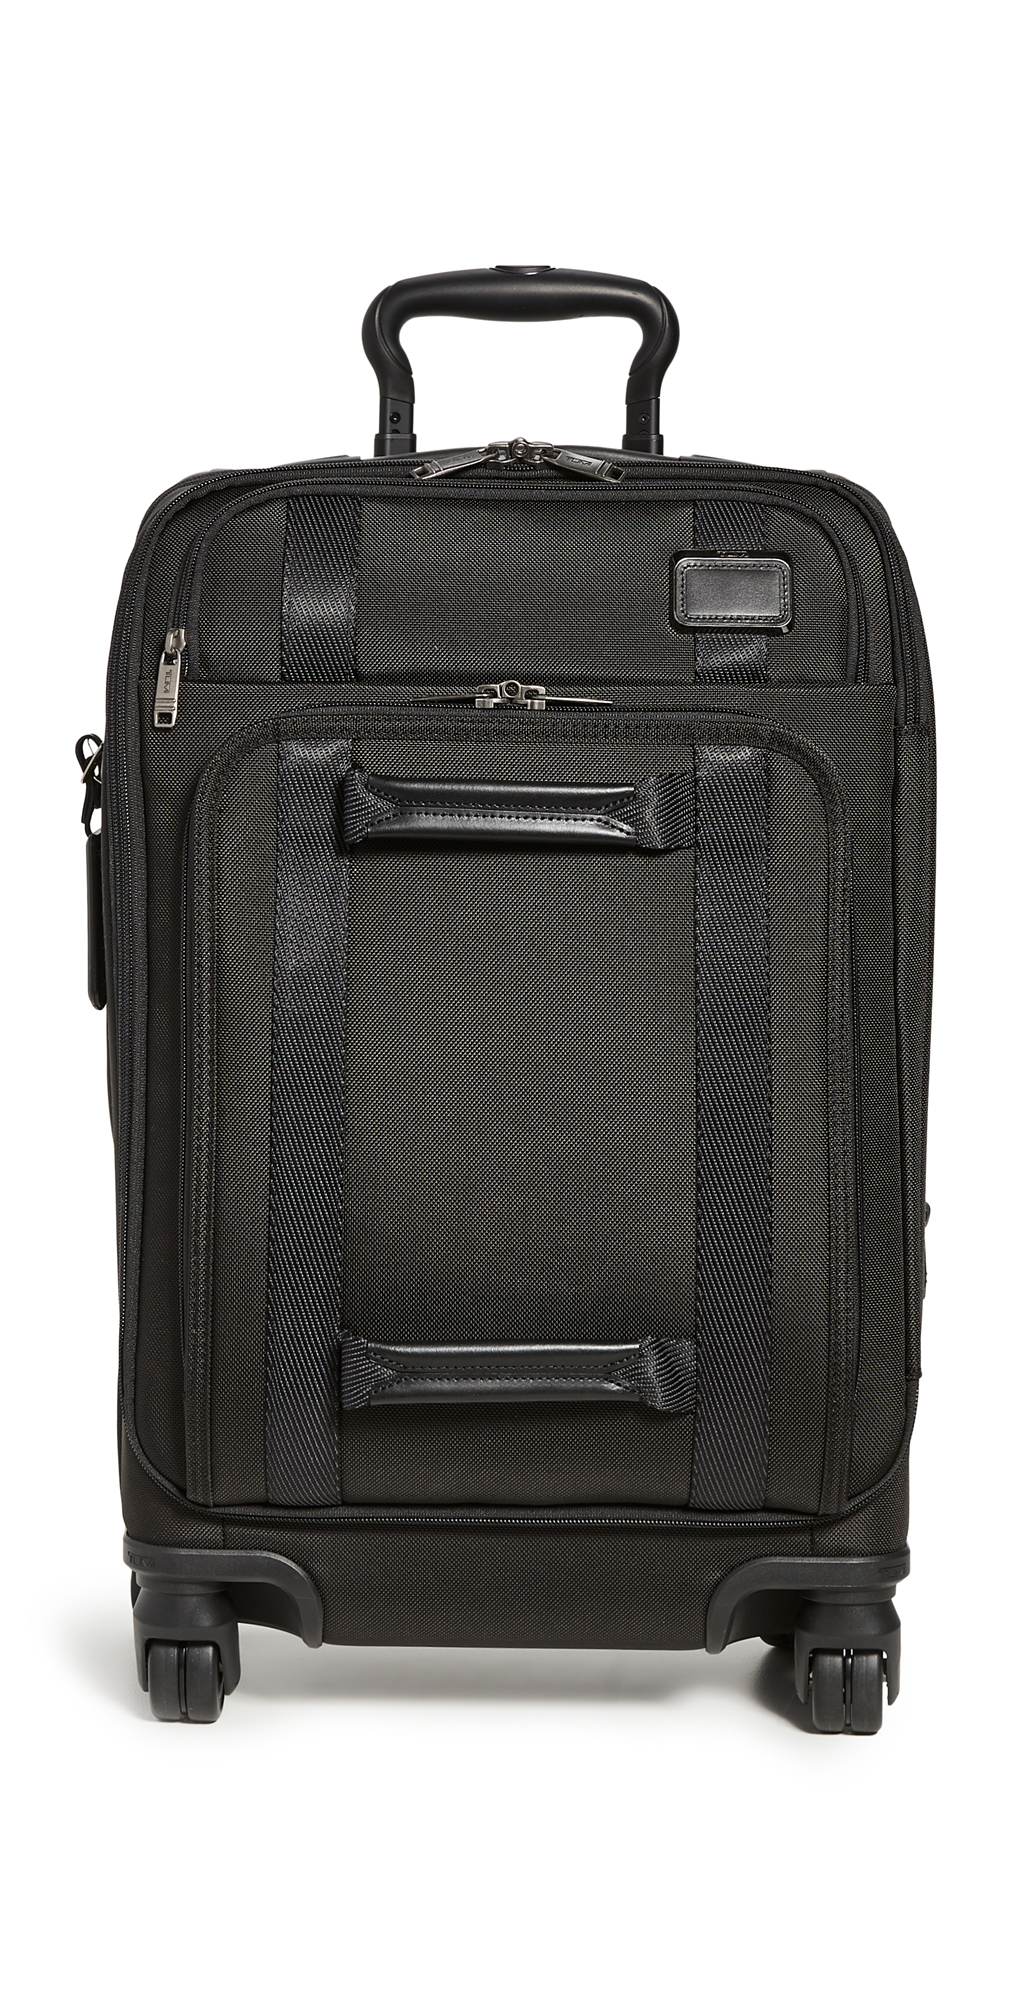 Tumi International Front Lid 4 Wheel Carry On Suitcase